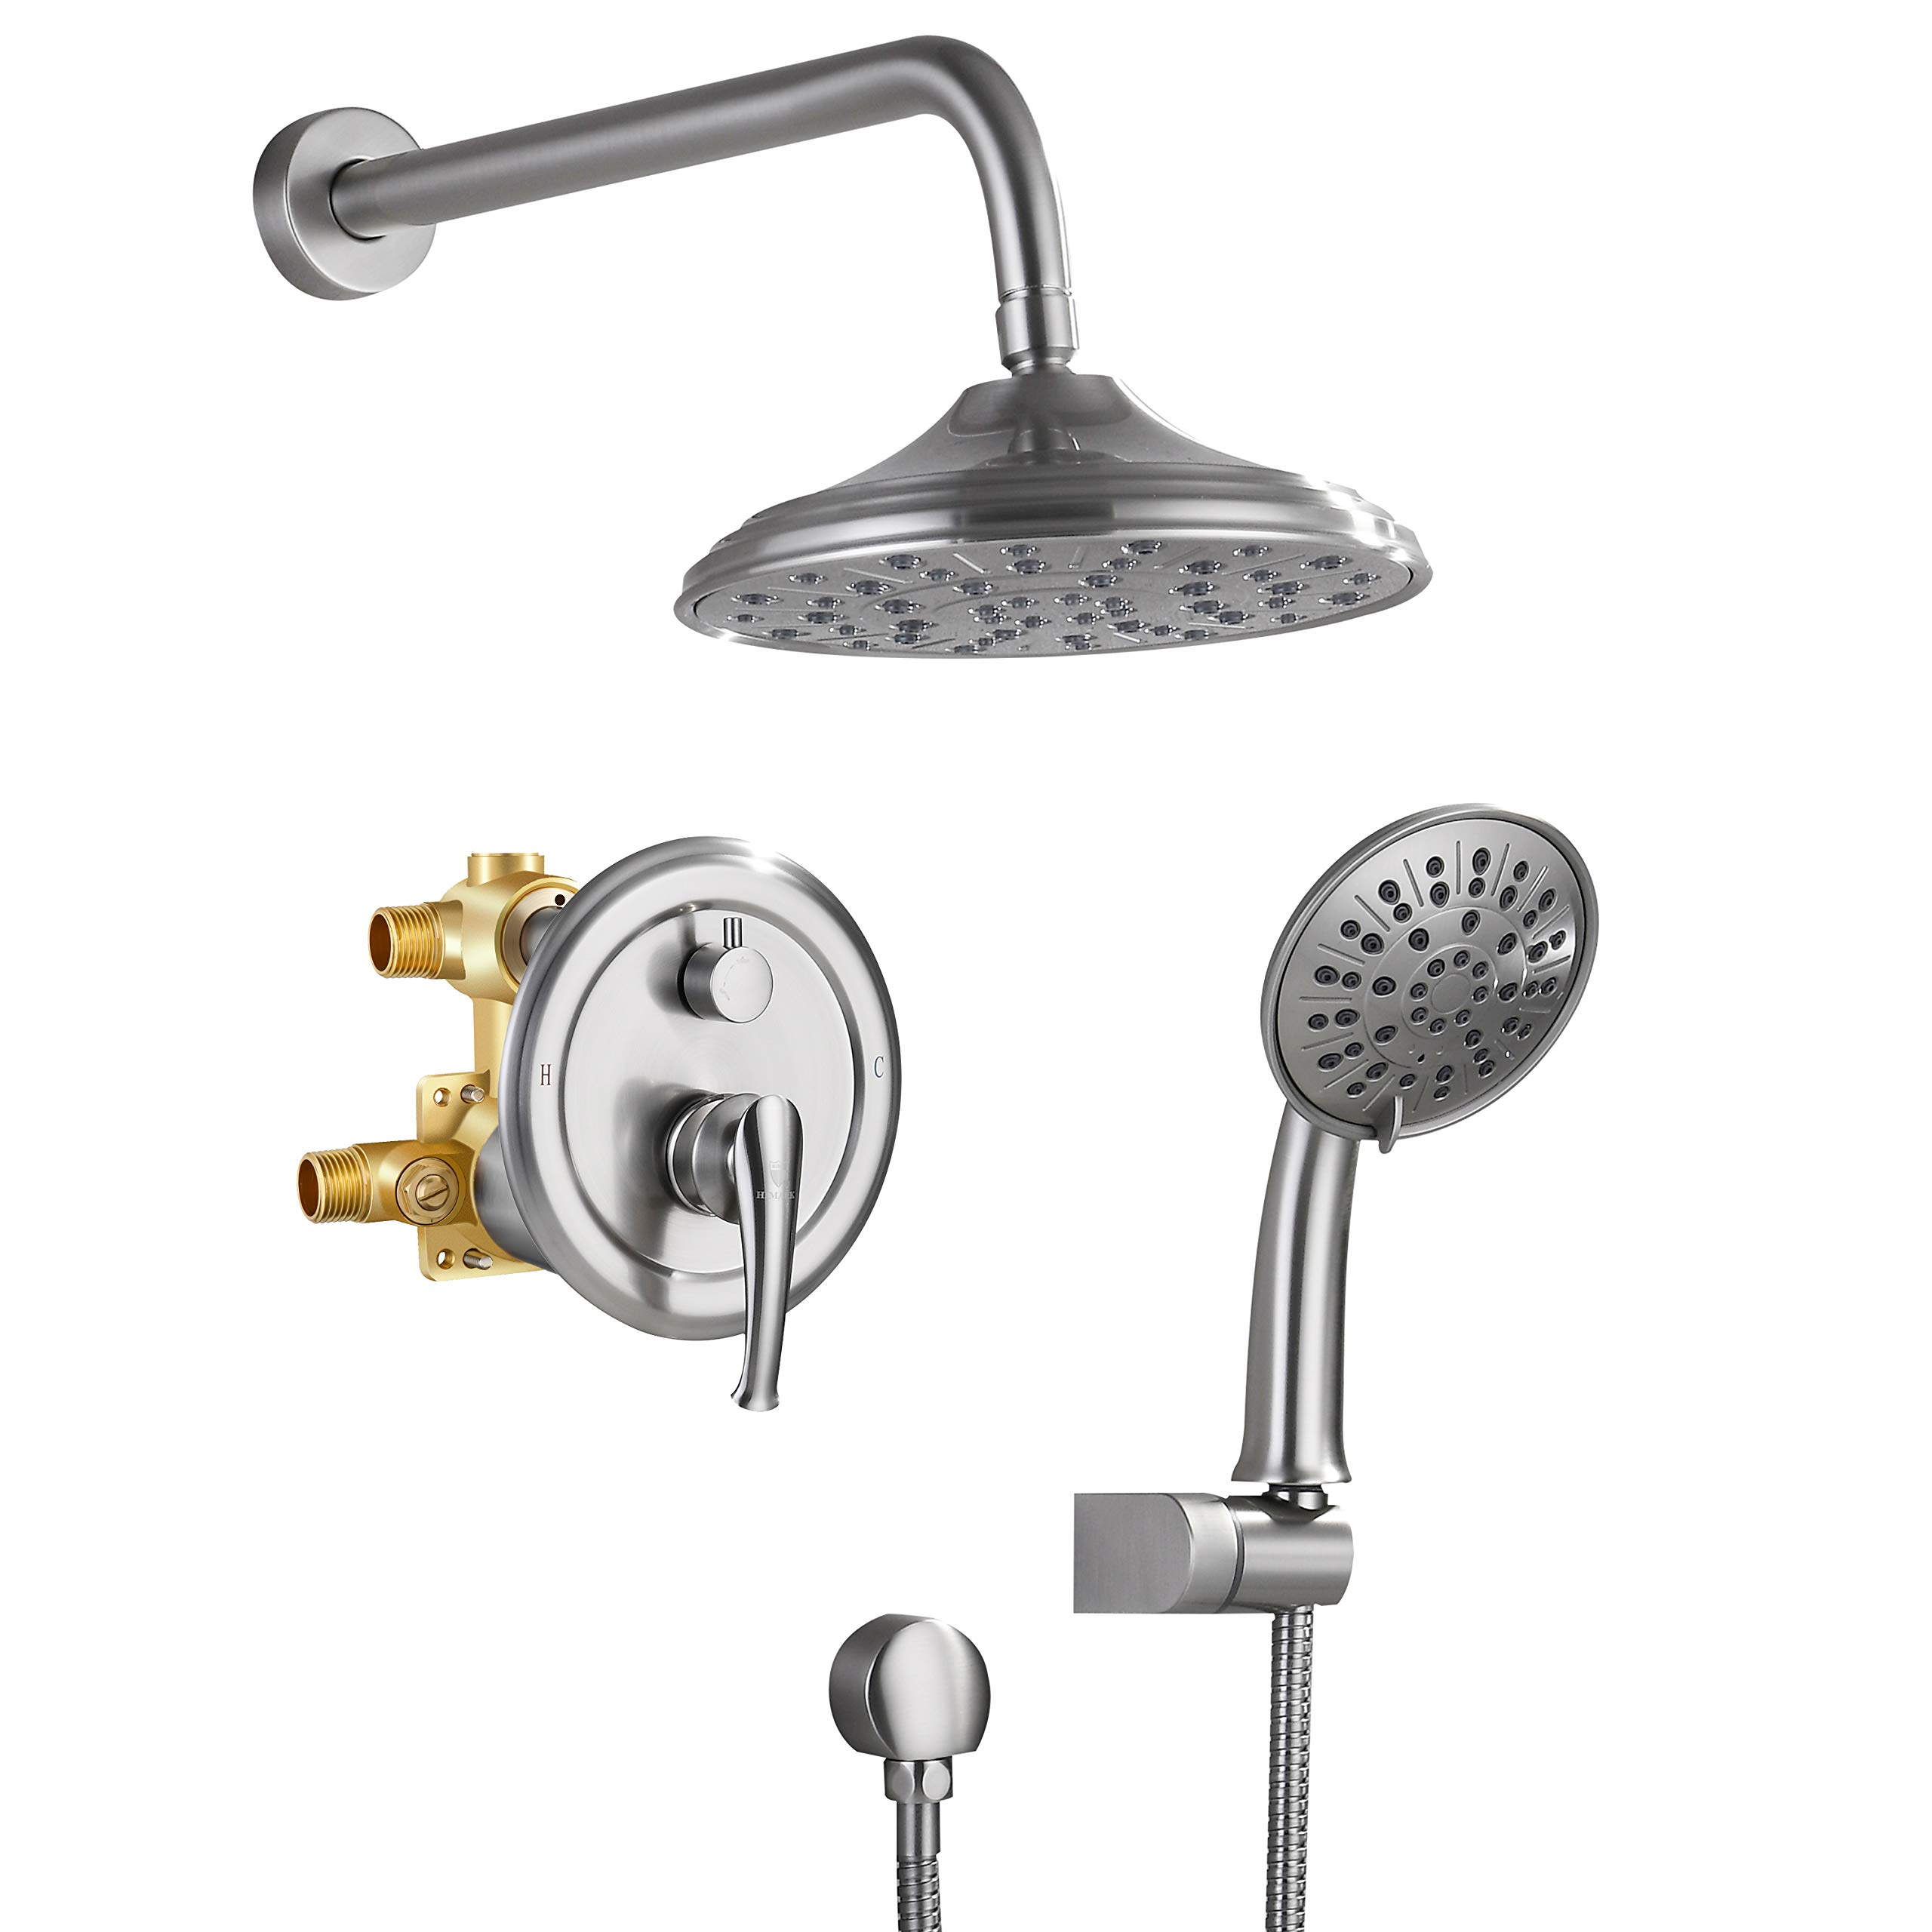 Bath Shower Faucet Set Complete Nickel Brushed Finish Wall Mount Rain Mixer Shower Combo with 8 Inch Shower Head and Shower Handle